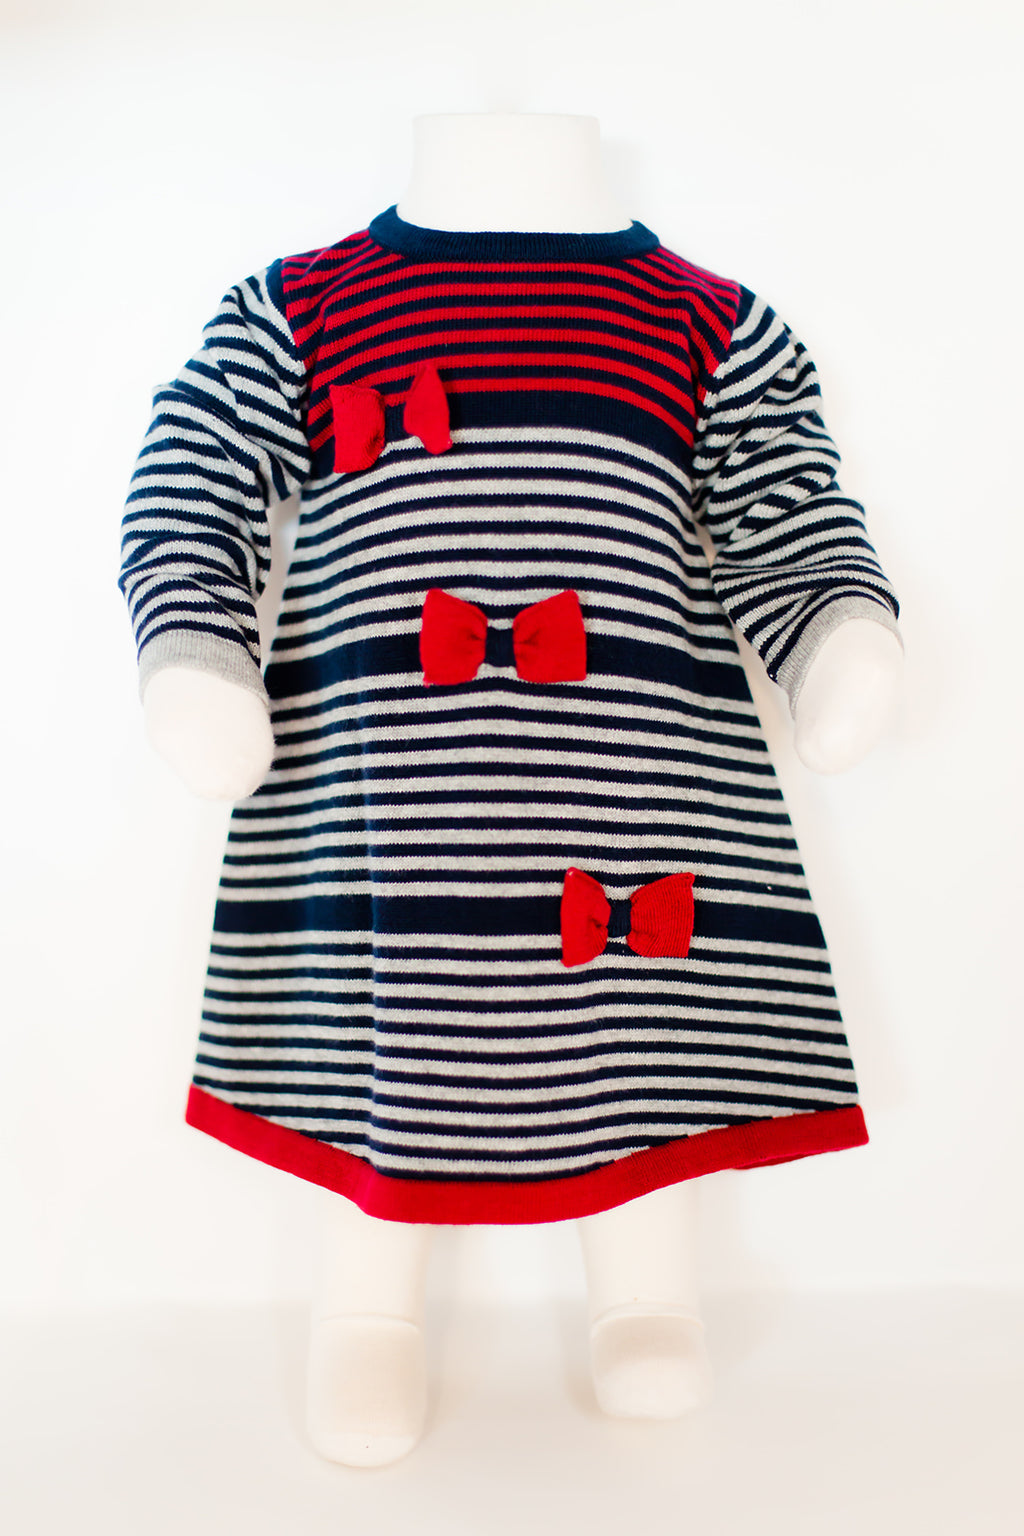 Stripe A-line Navy Knit Outfit